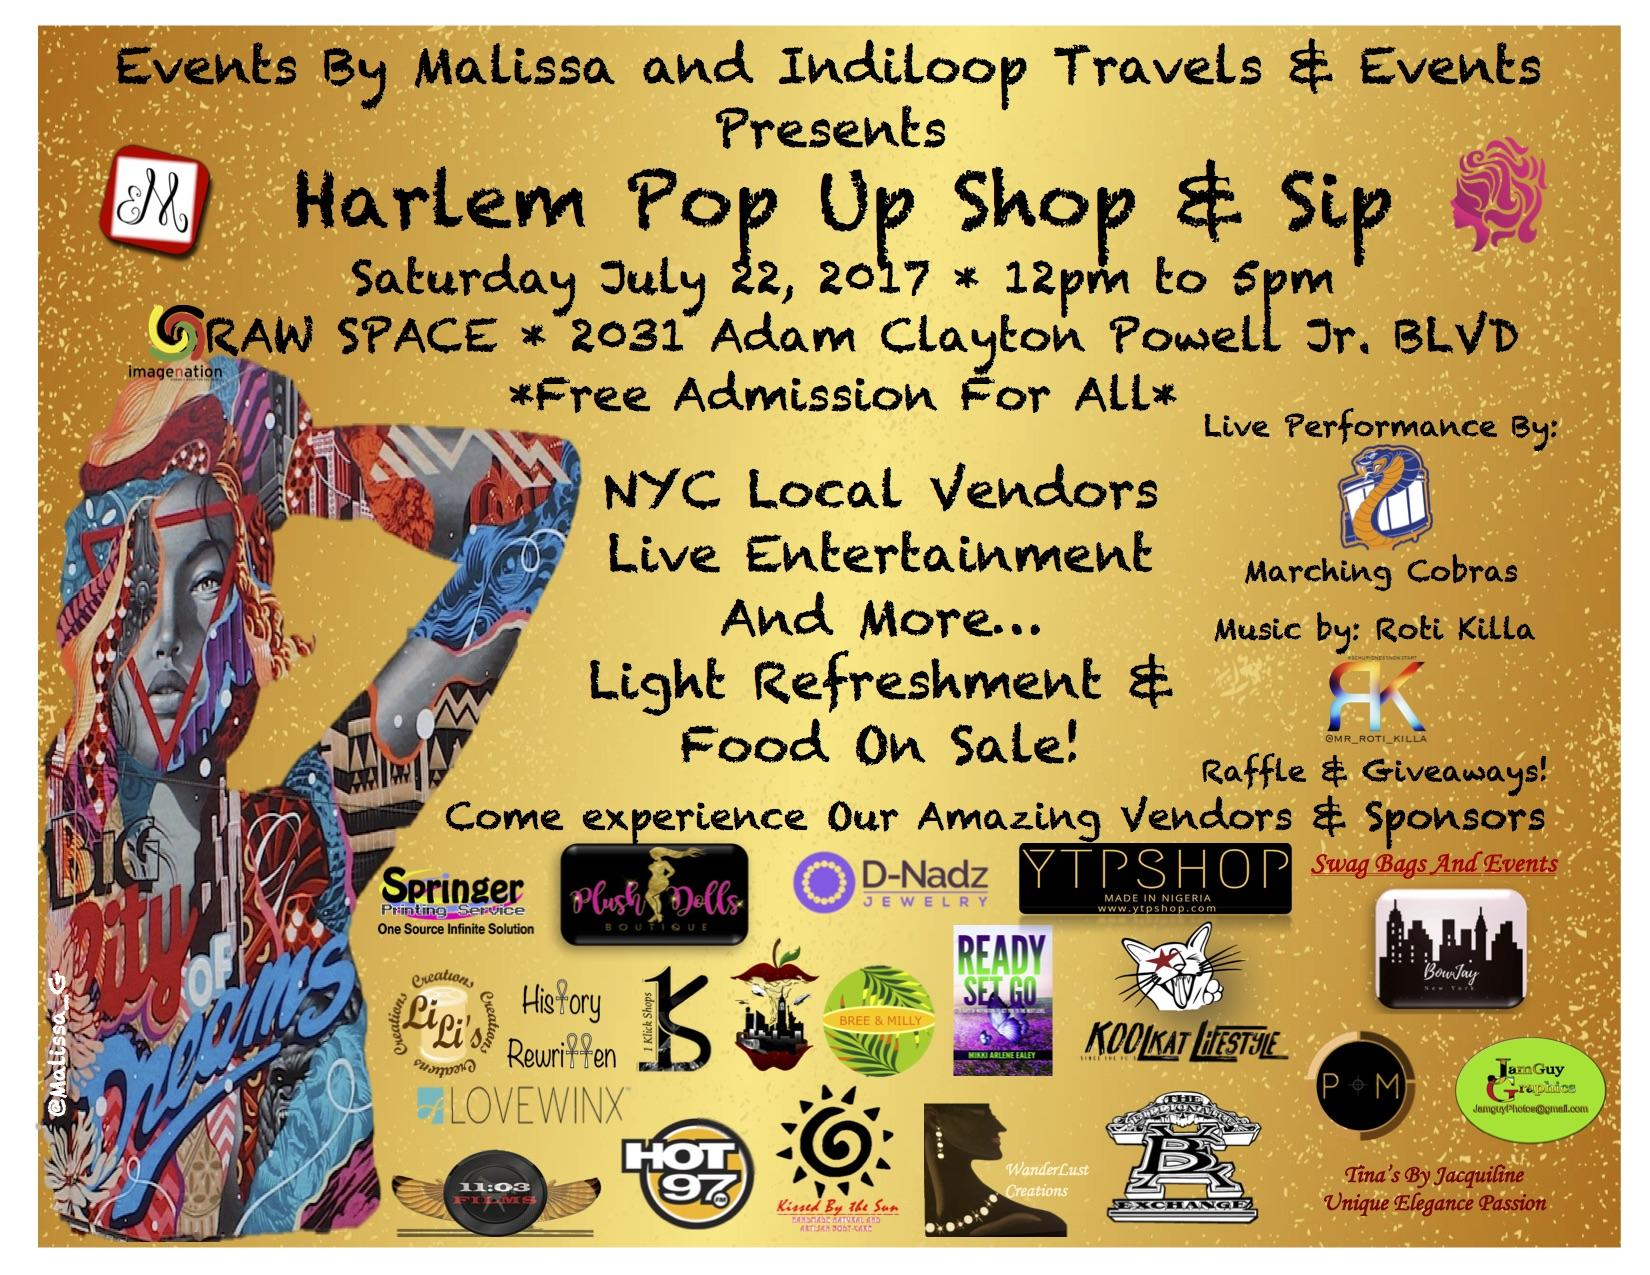 Harlem Pop Up Shop & Sip- July 22, 2017 *FREE